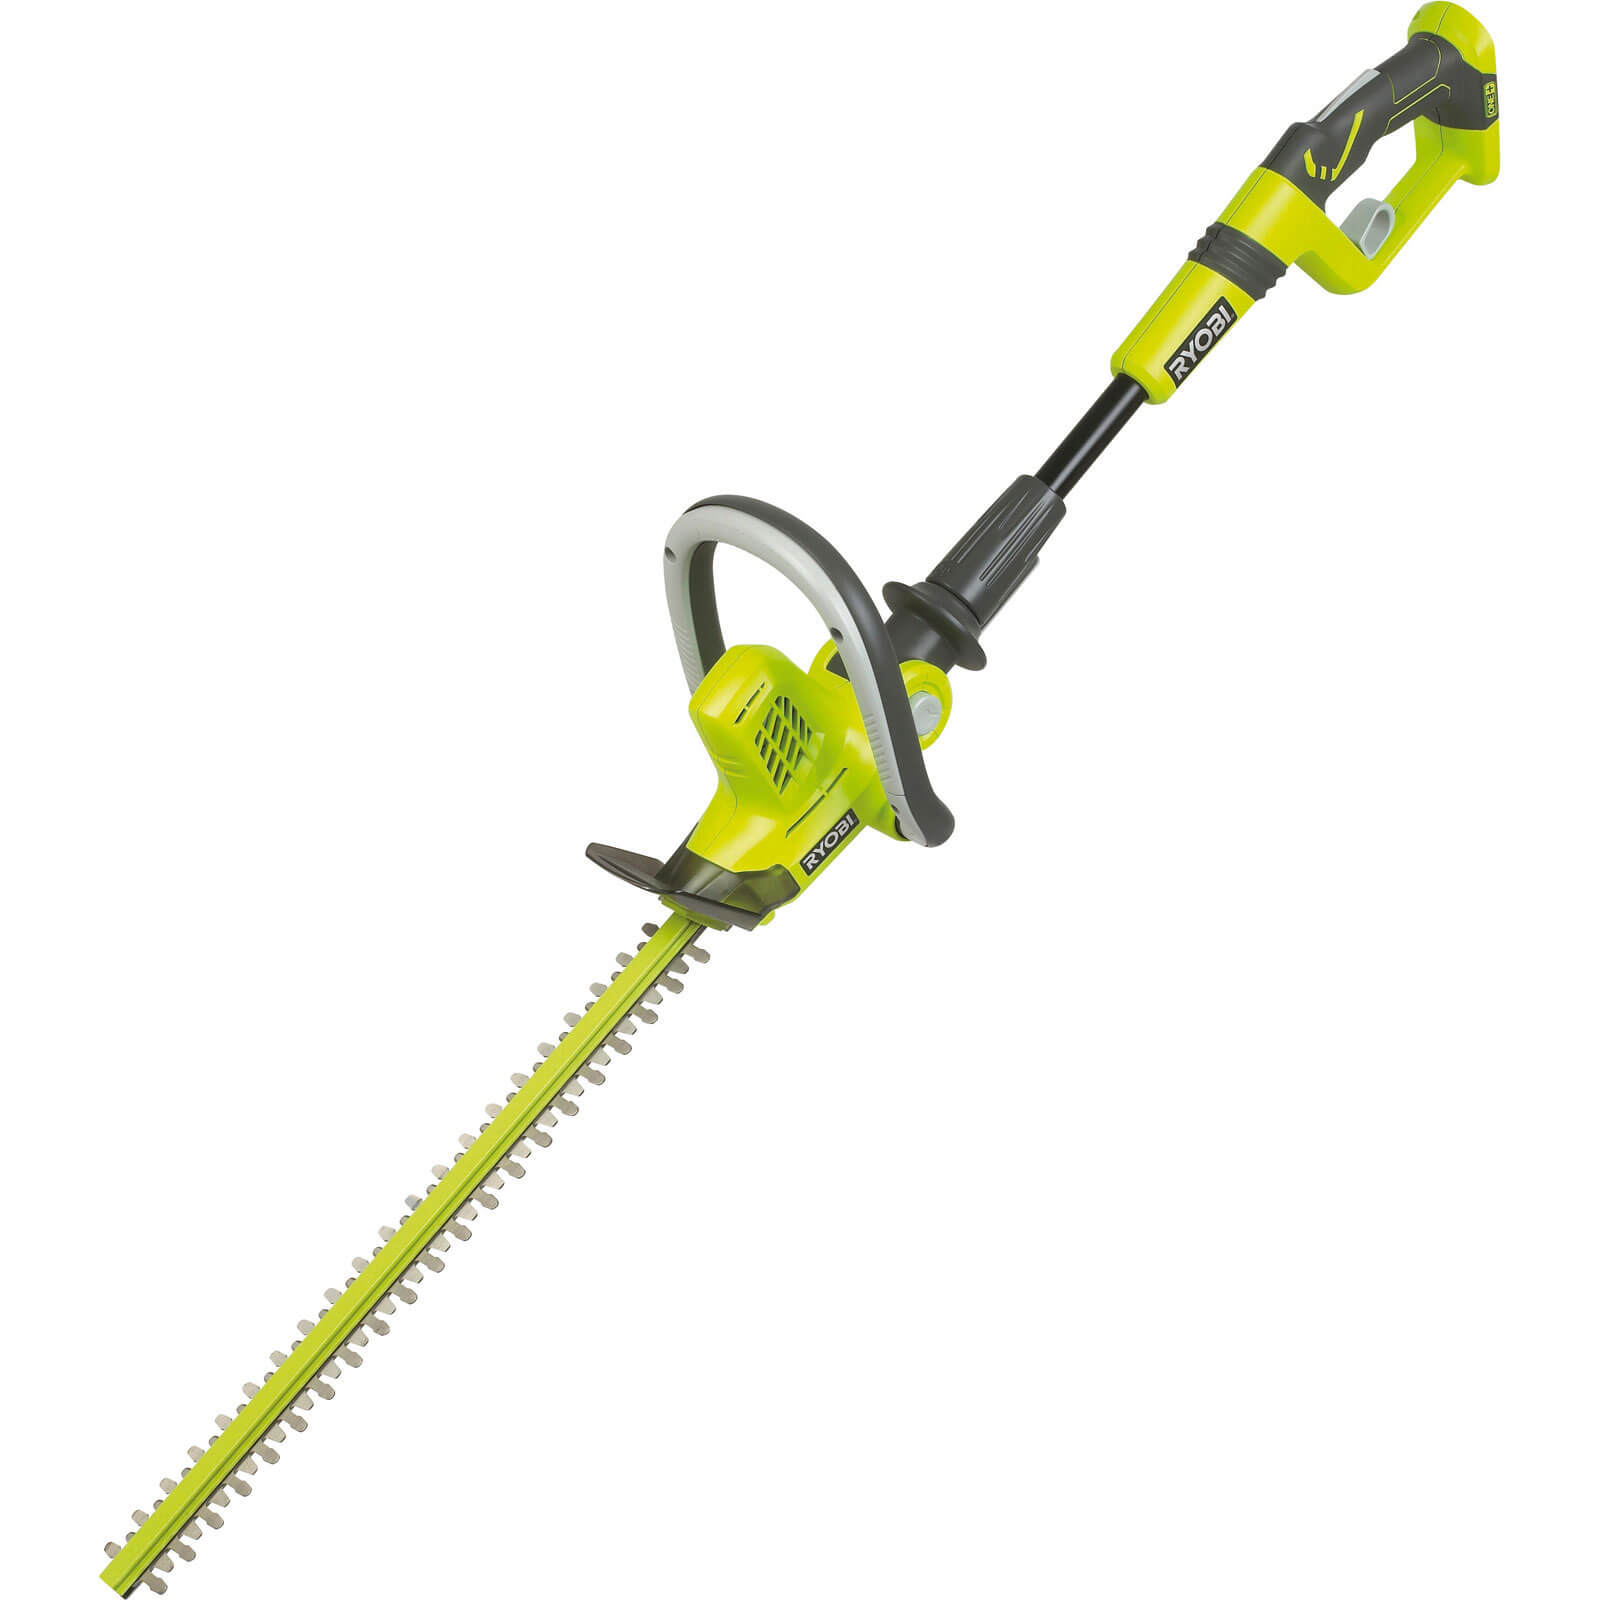 Ryobi OHT1850X 18v Cordless Long Reach Hedge Trimmer 500mm No Batteries No Charger